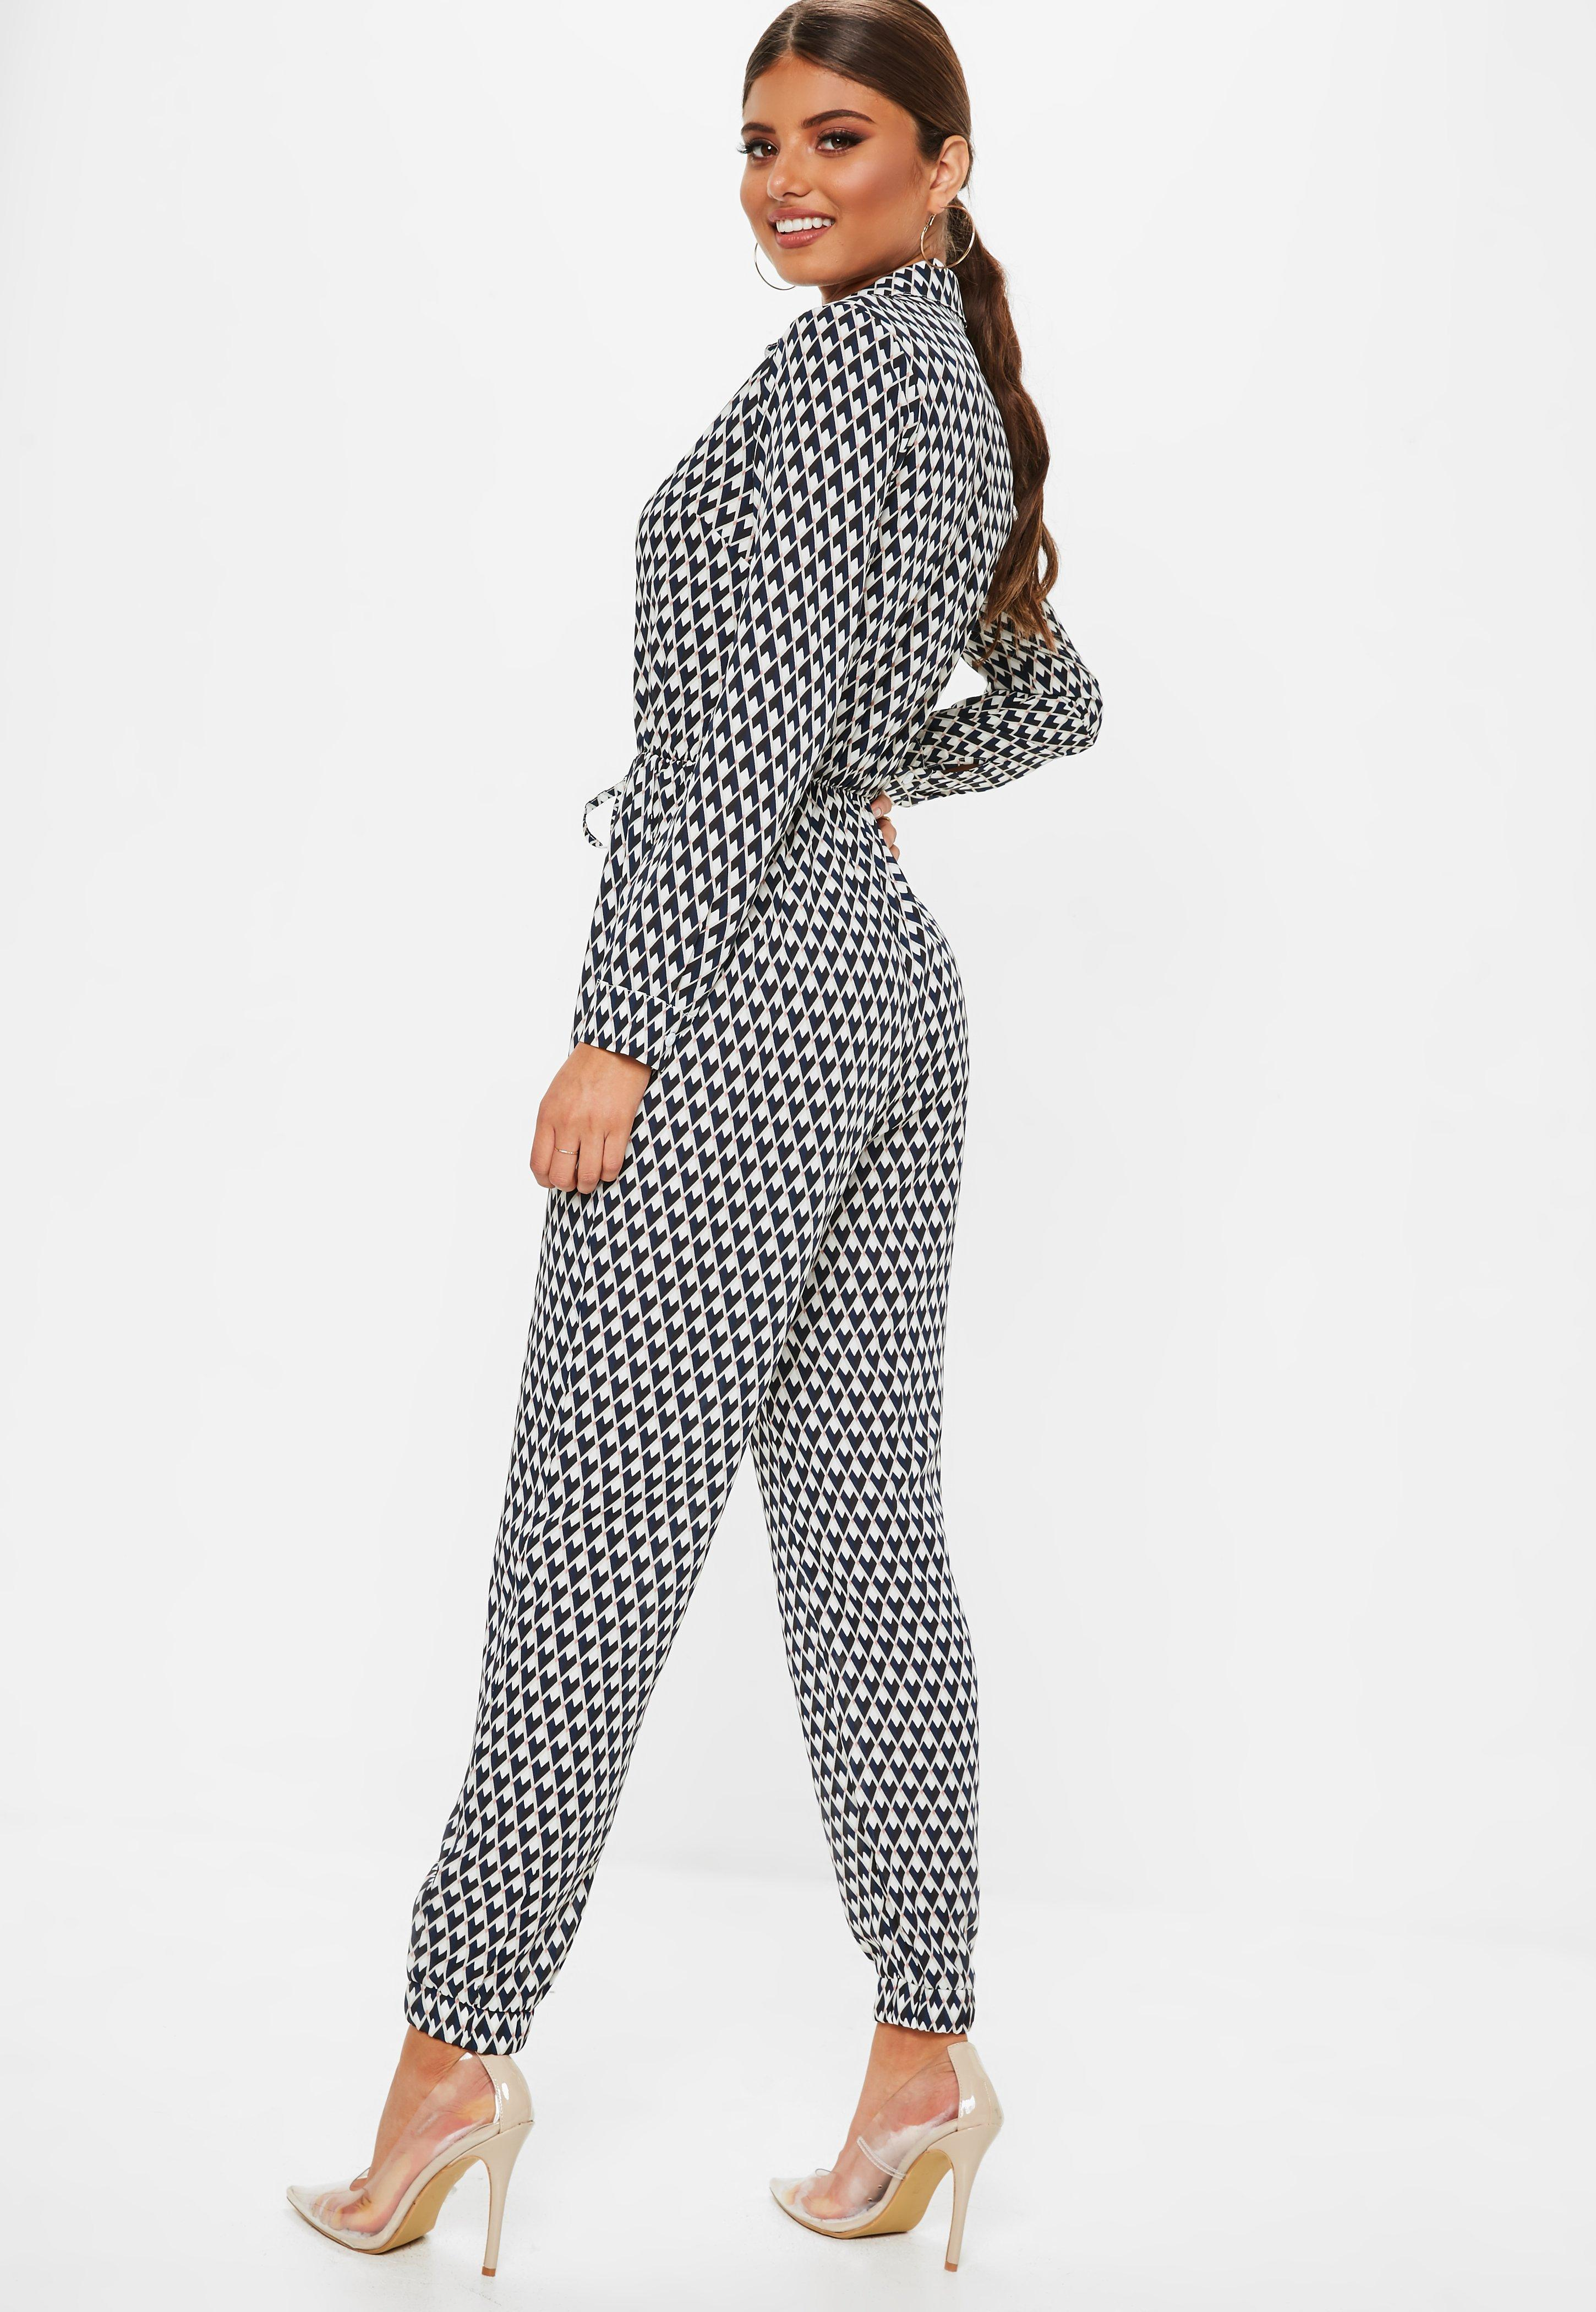 1cdb087785 Lyst - Missguided Navy Geometric Print Utility Jumpsuit in Blue